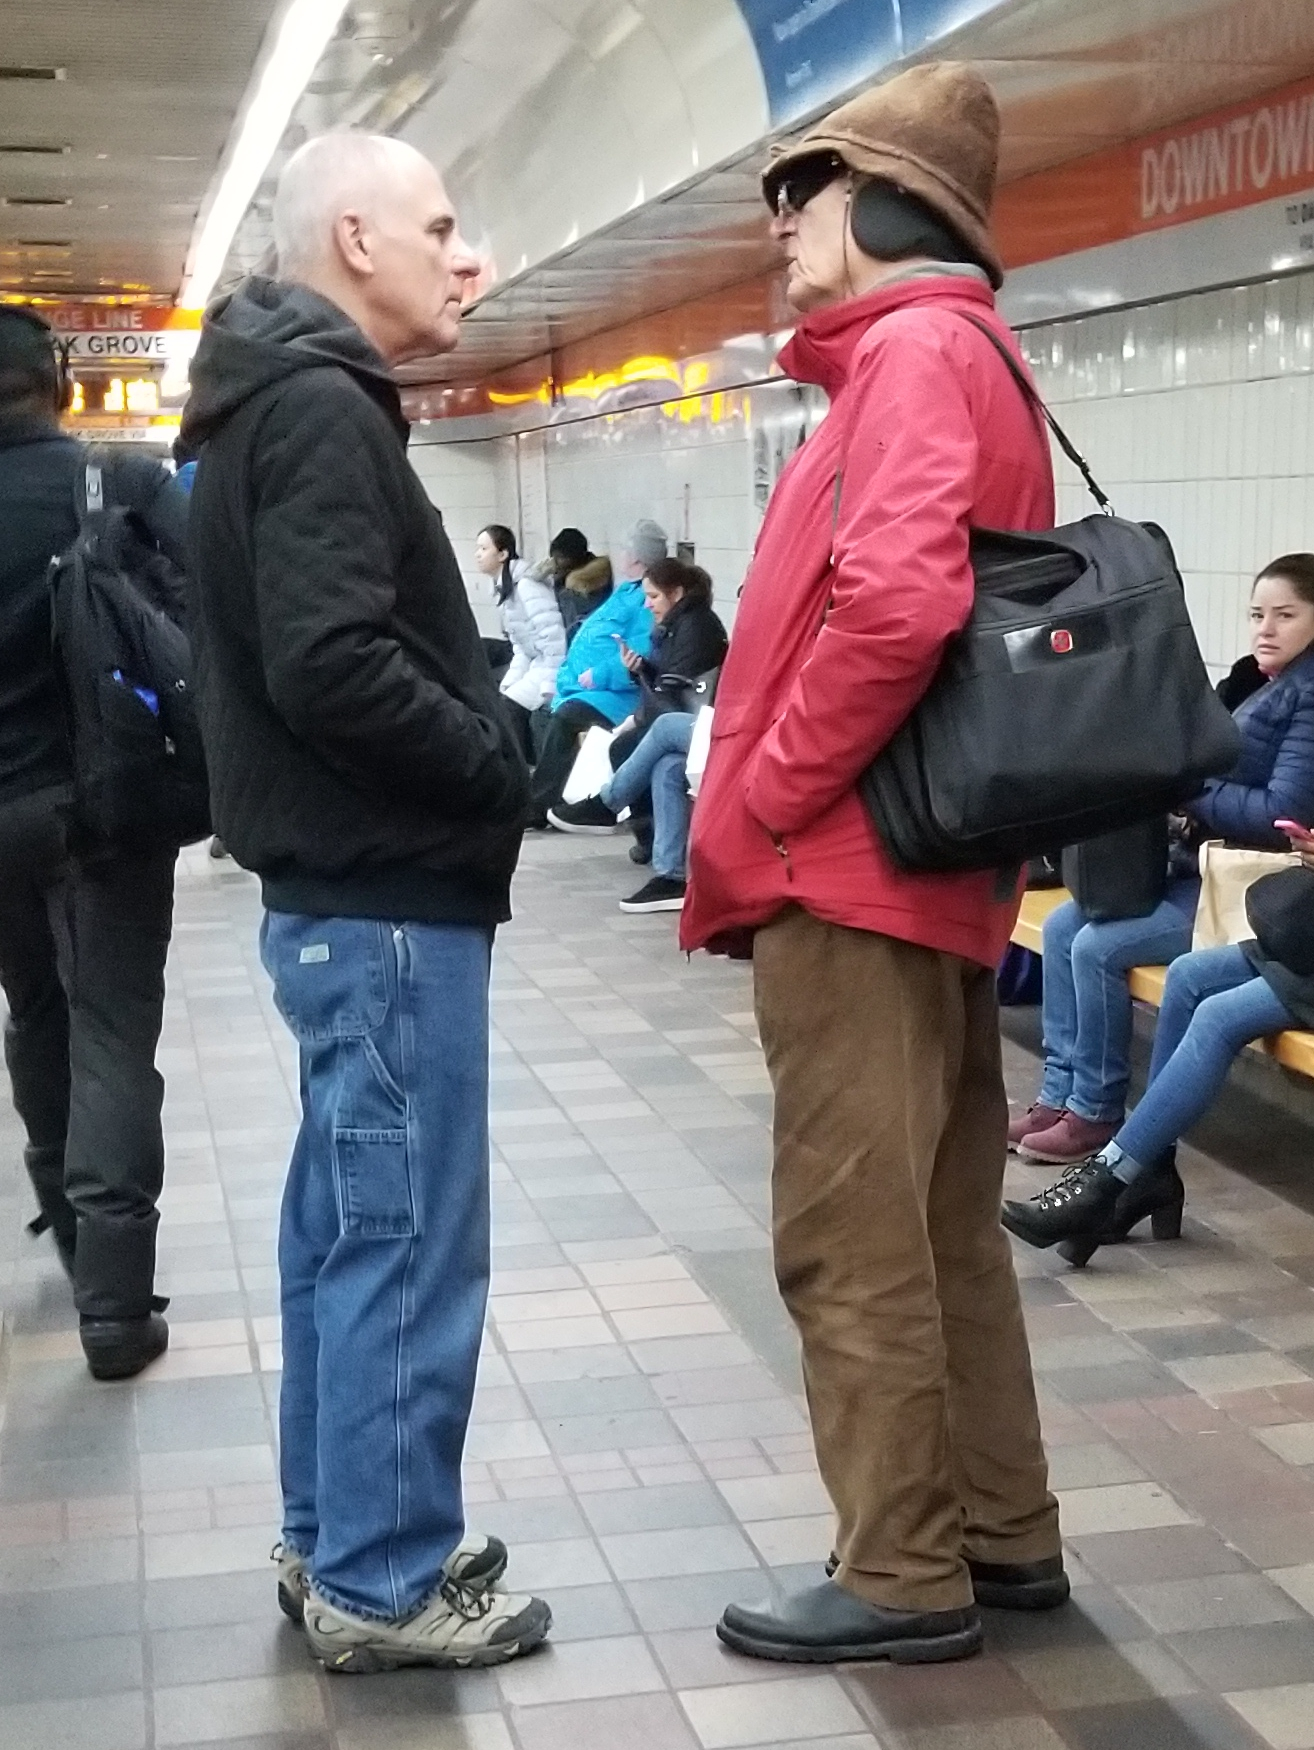 This gentleman (right) spoke of belief in 'The Divine.' Eric (left) asked him questions about 'The Divine.' The man said 'The Divine' was unknowable. So Eric asked him about sin and justice. The man said that 'The Divine' doesn't care about sin and justice and we can do whatever we want. Eric wisely asked, 'You said The Divine is unknowable, but you claim to KNOW that The Divine doesn't care what you do.' It was a friendly conversation and a seed was planted. Please pray for this man. We sadly didn't get his name but God knows who he is.